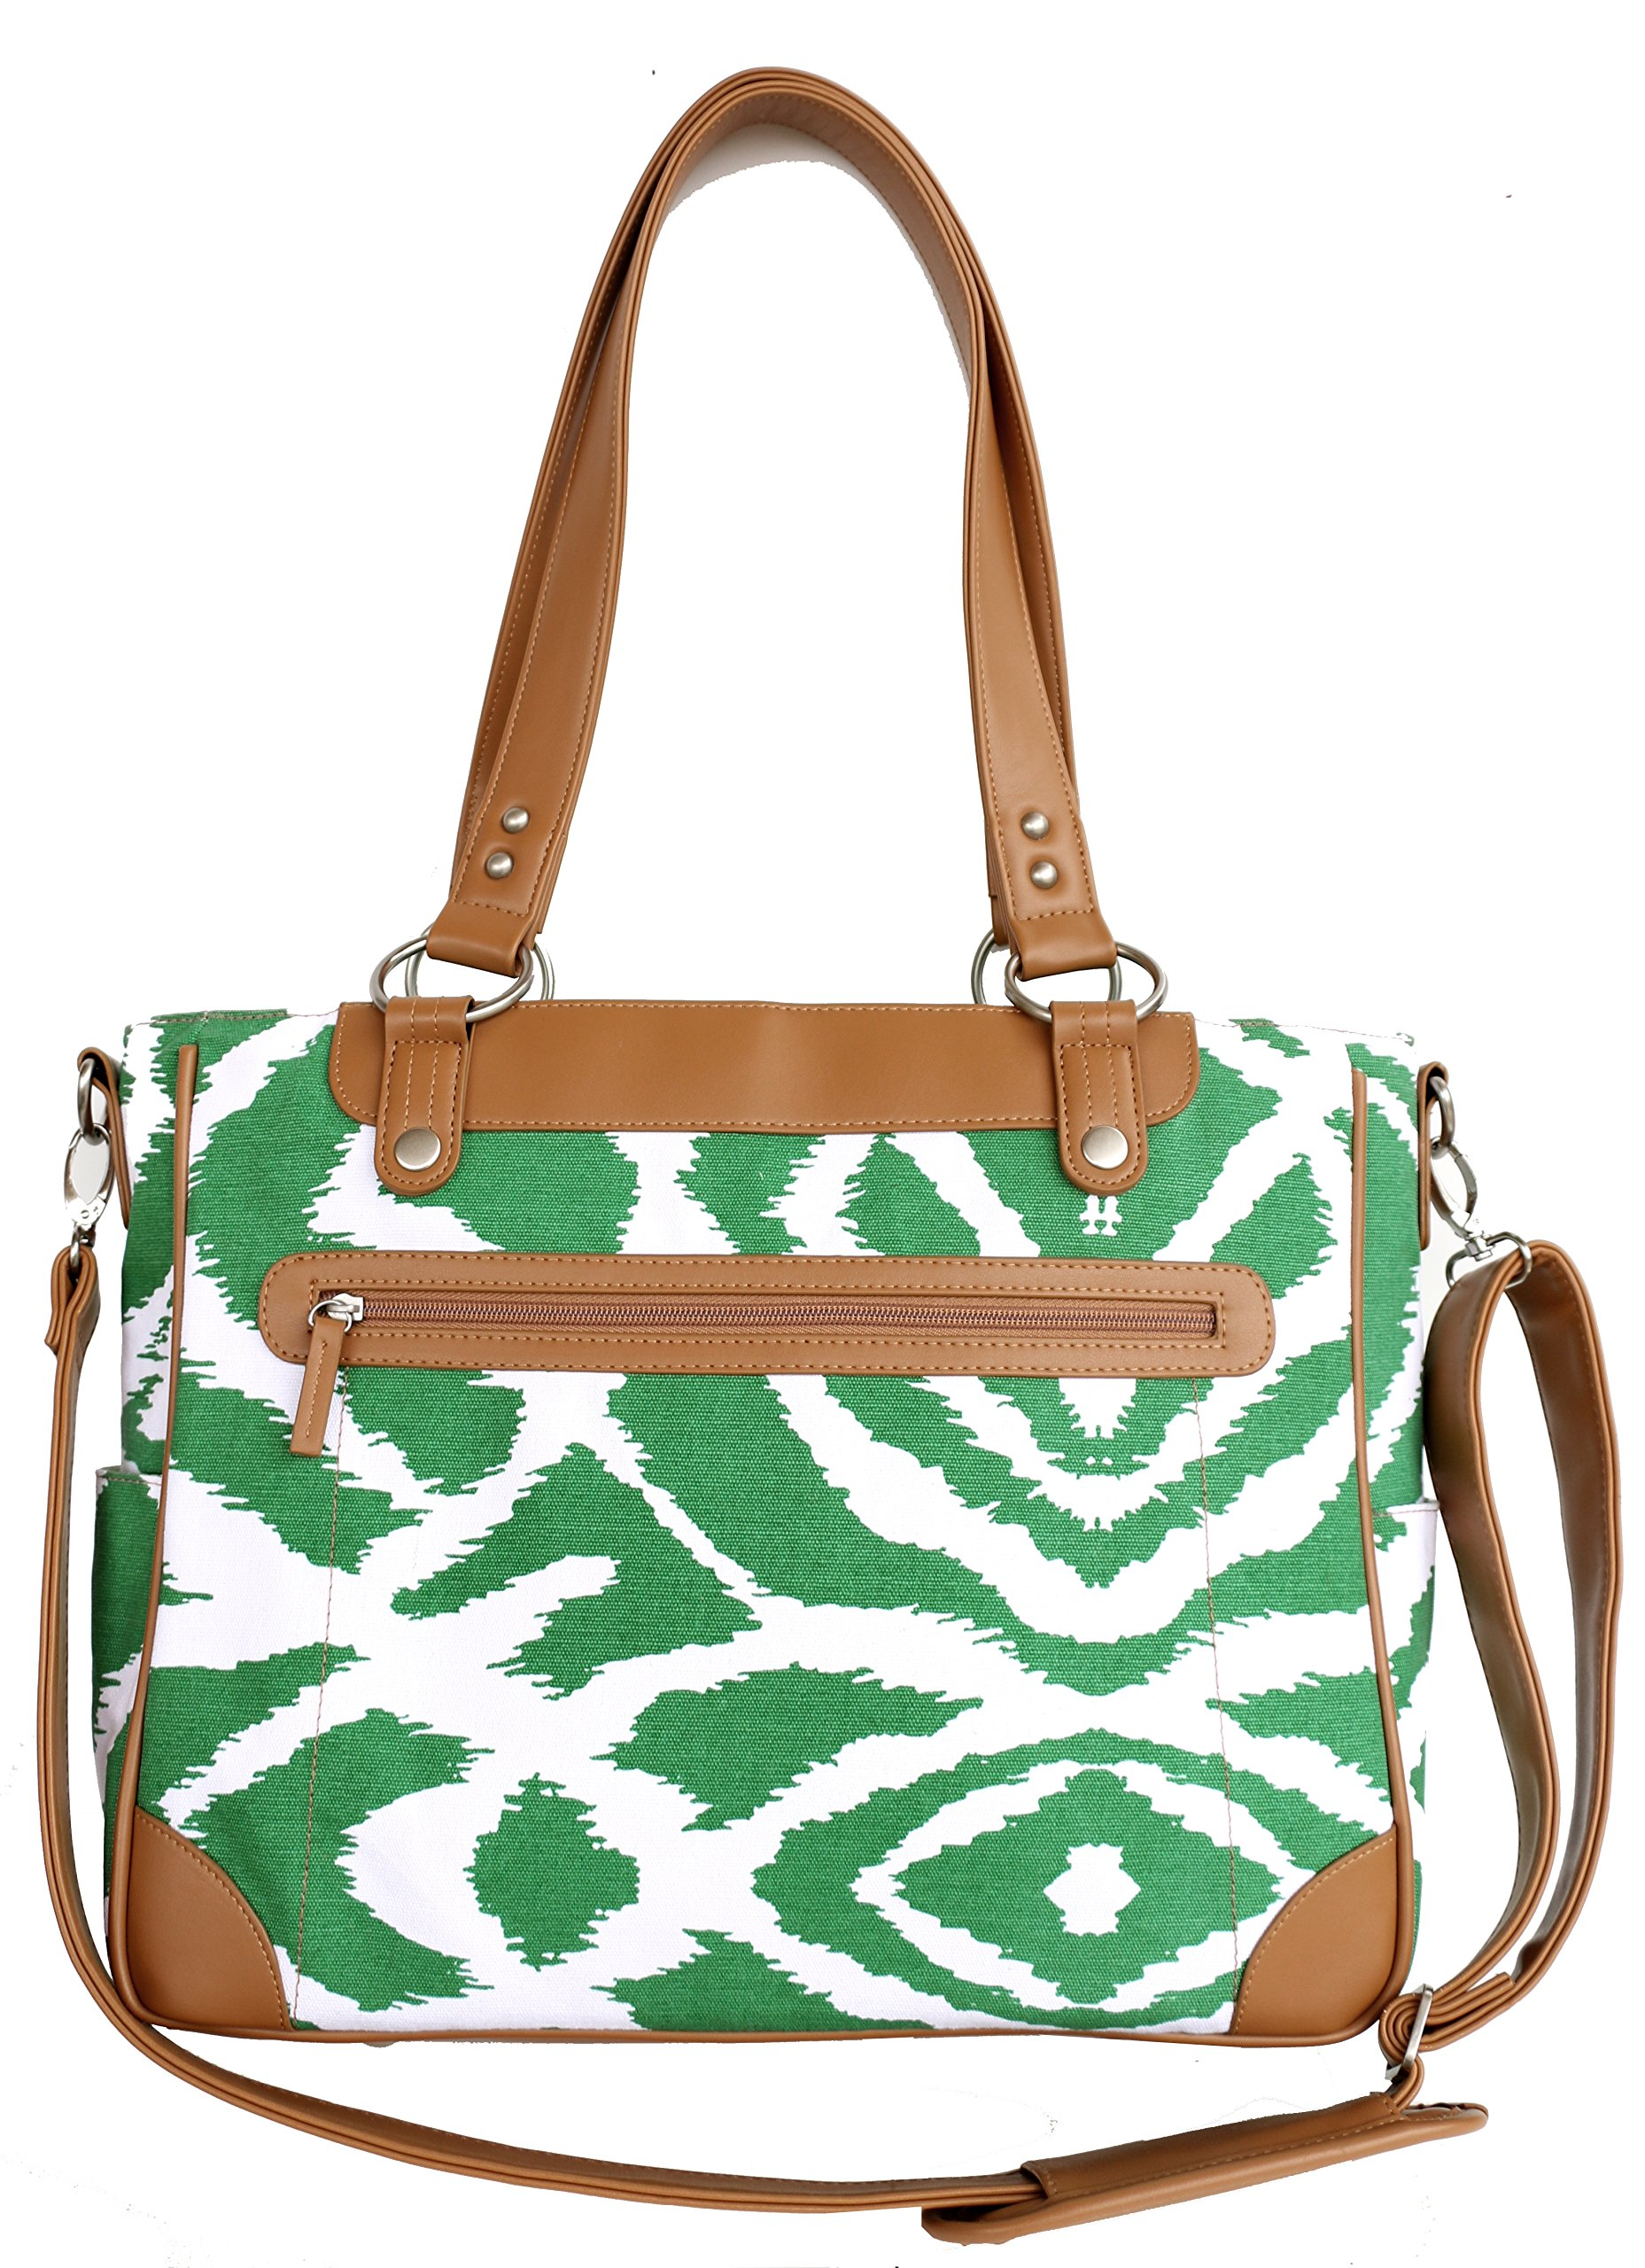 Kailo Chic Camera and Laptop Bag (Emerald Ikat) by Kailo Chic